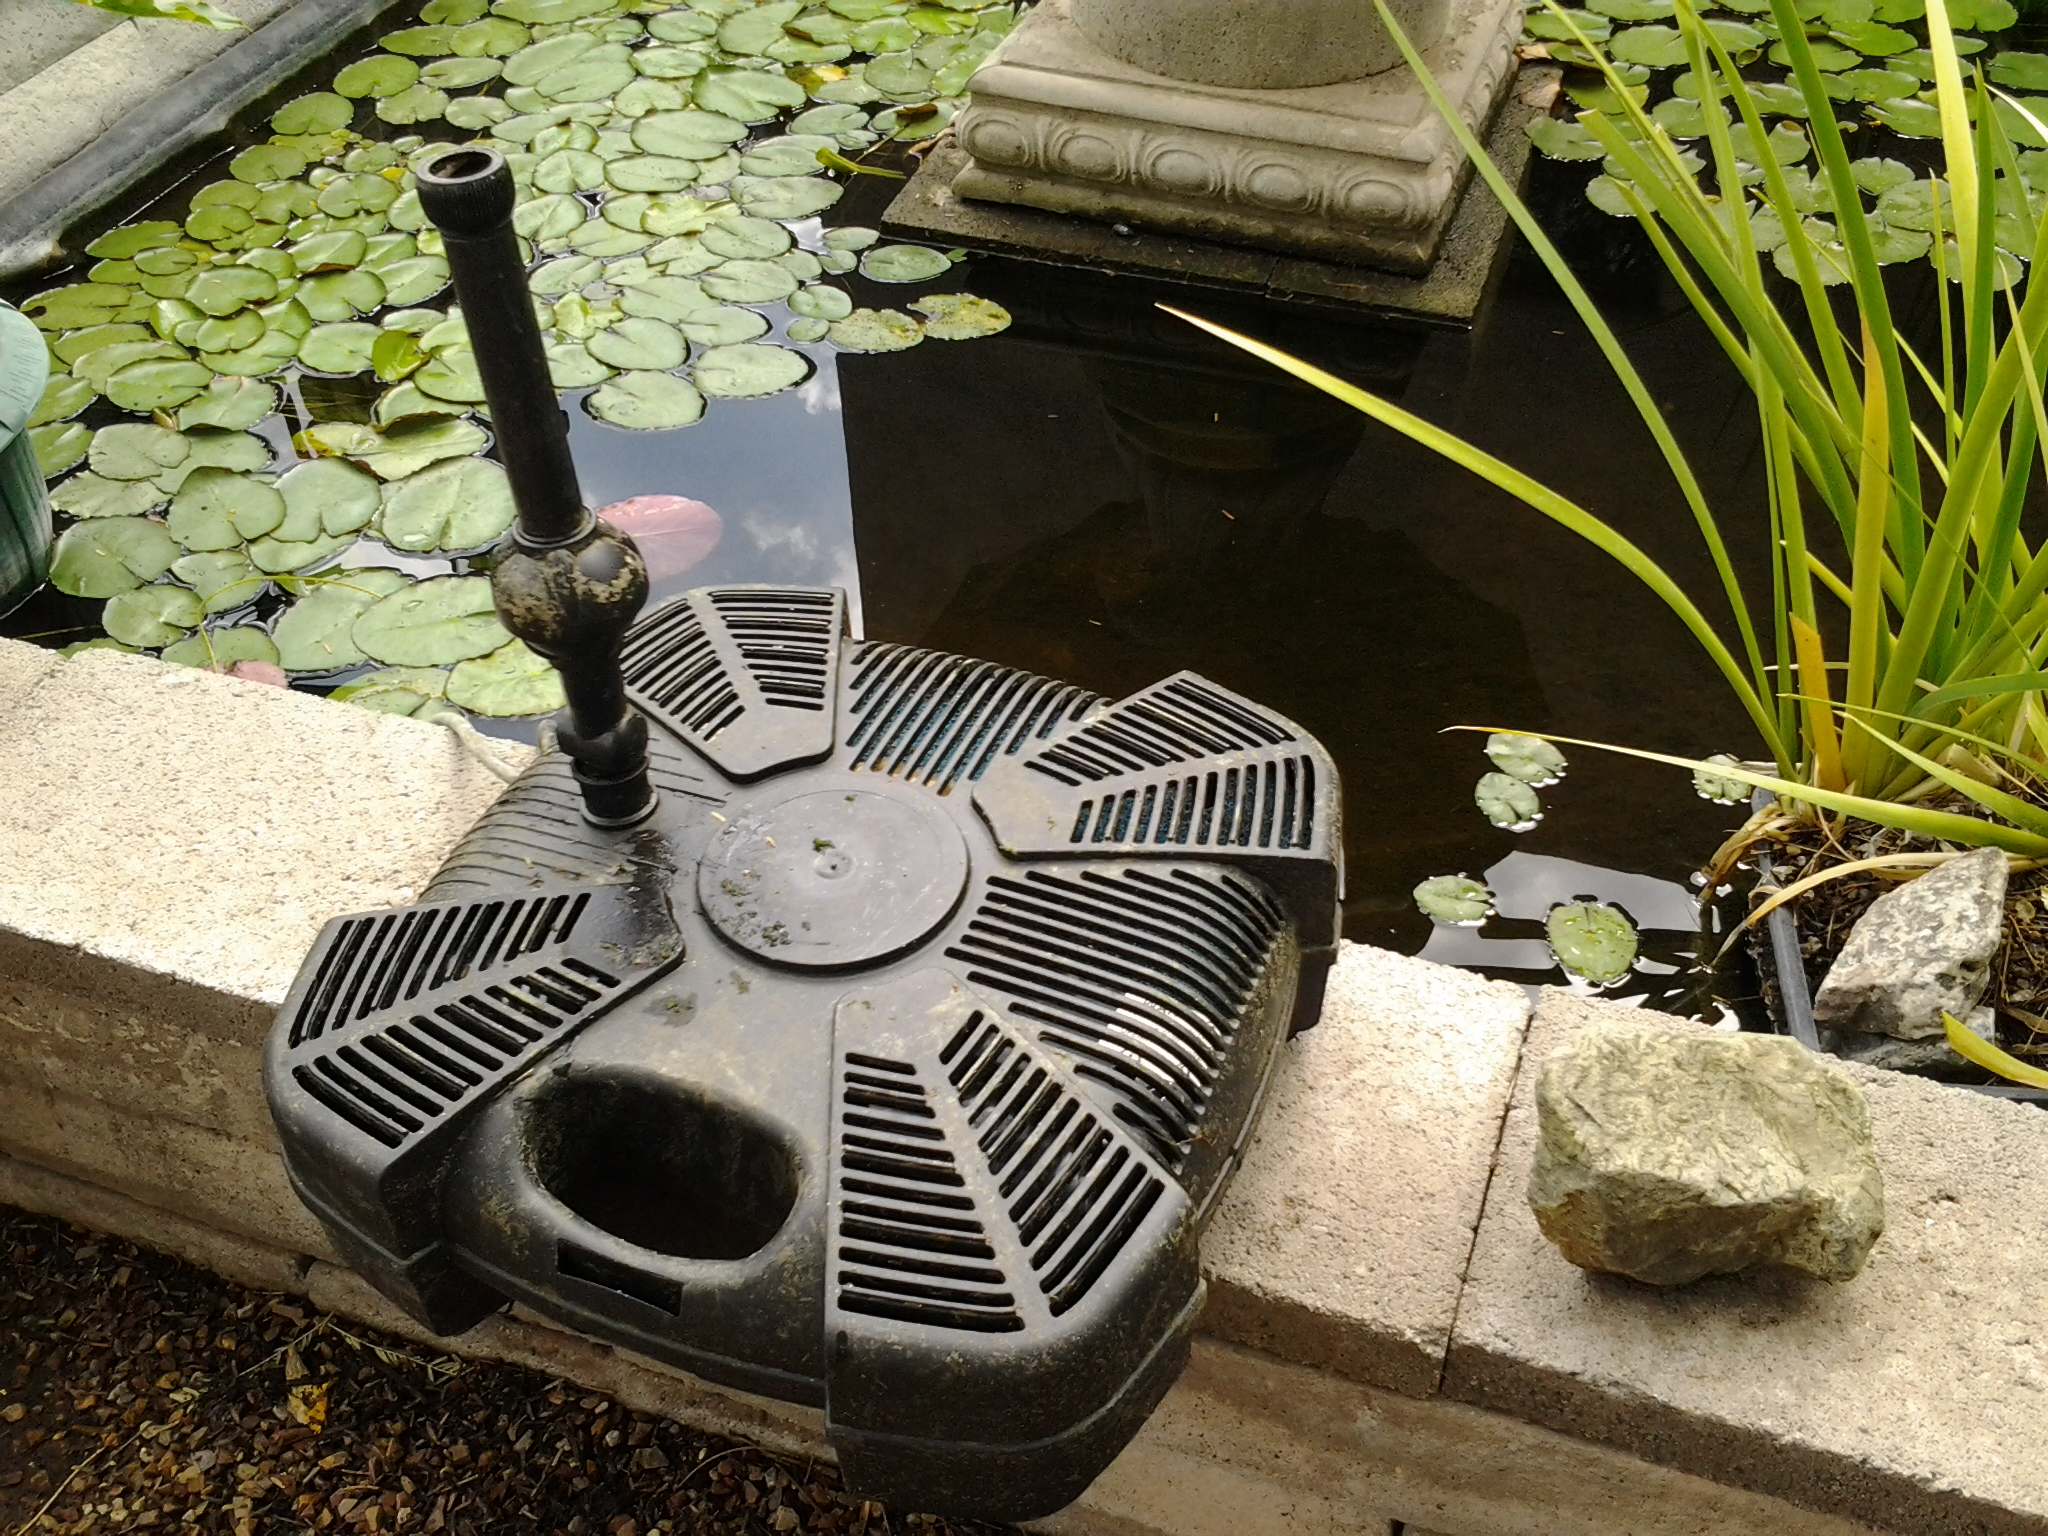 Best pond filter system all in one lifegard pump with uv for Small pond uv filter